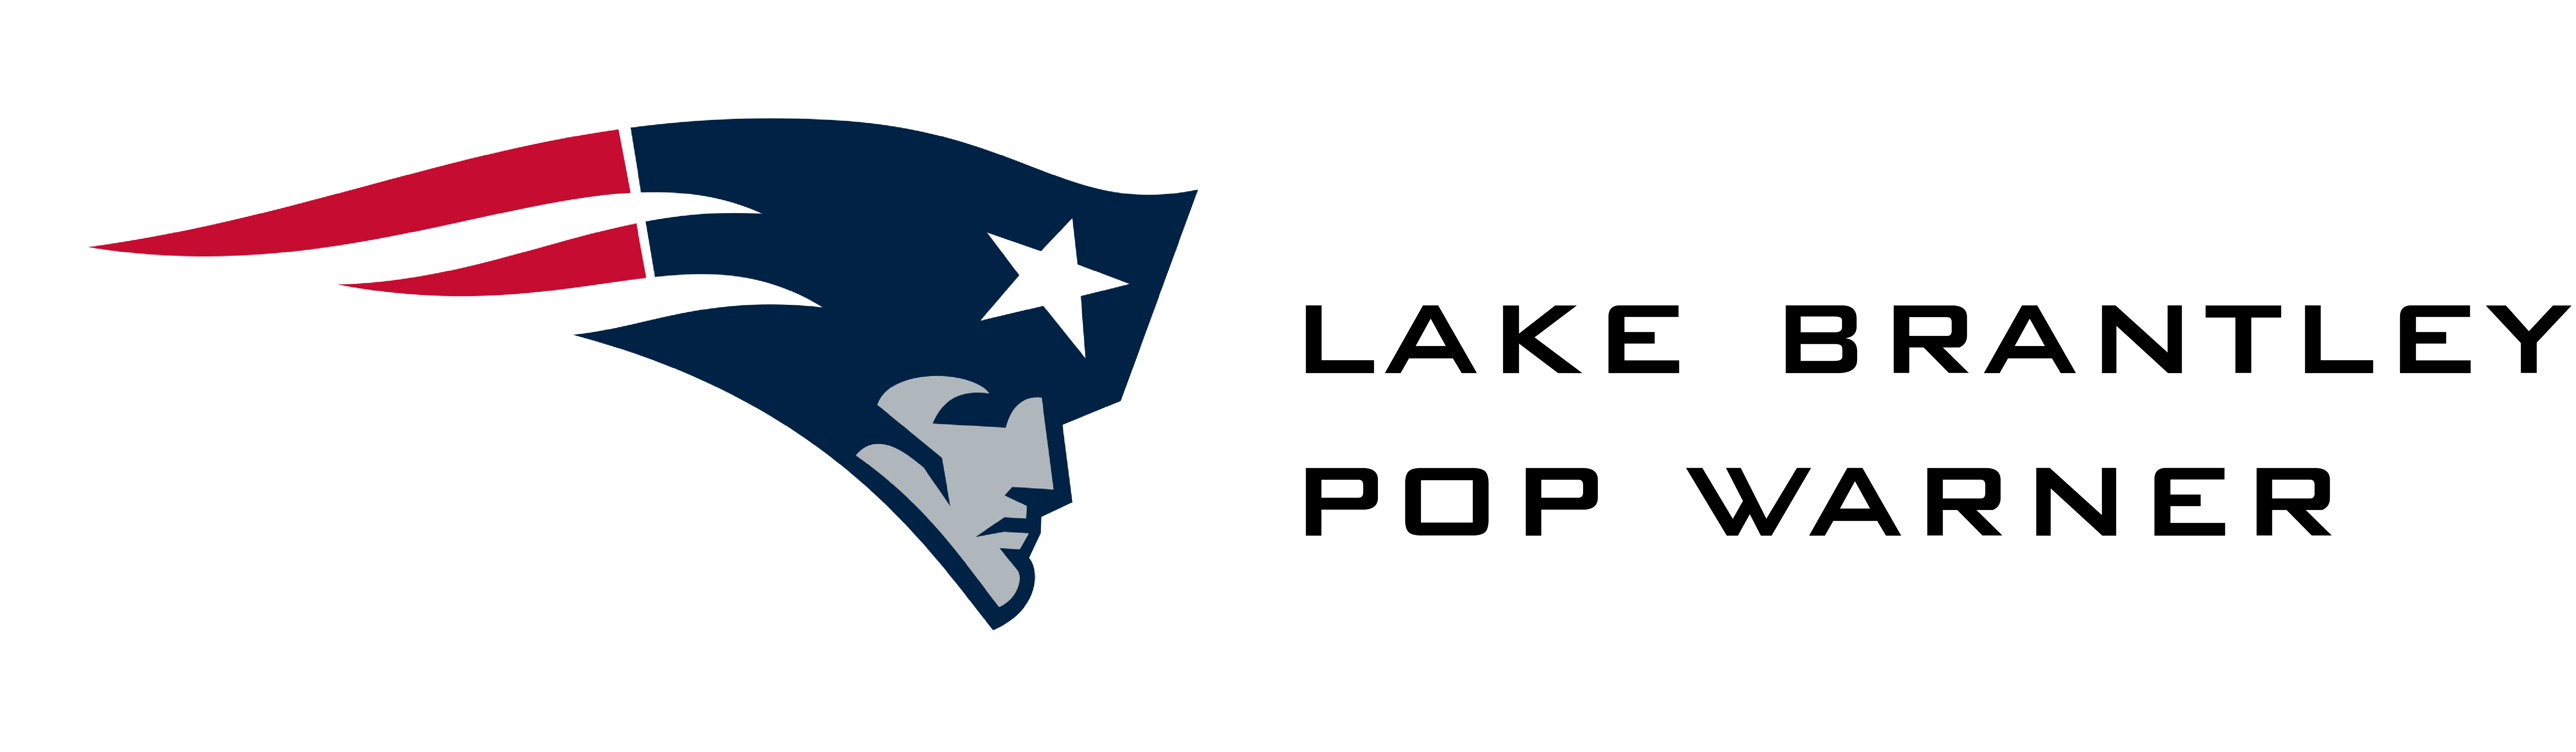 Lake Brantley Pop Warner